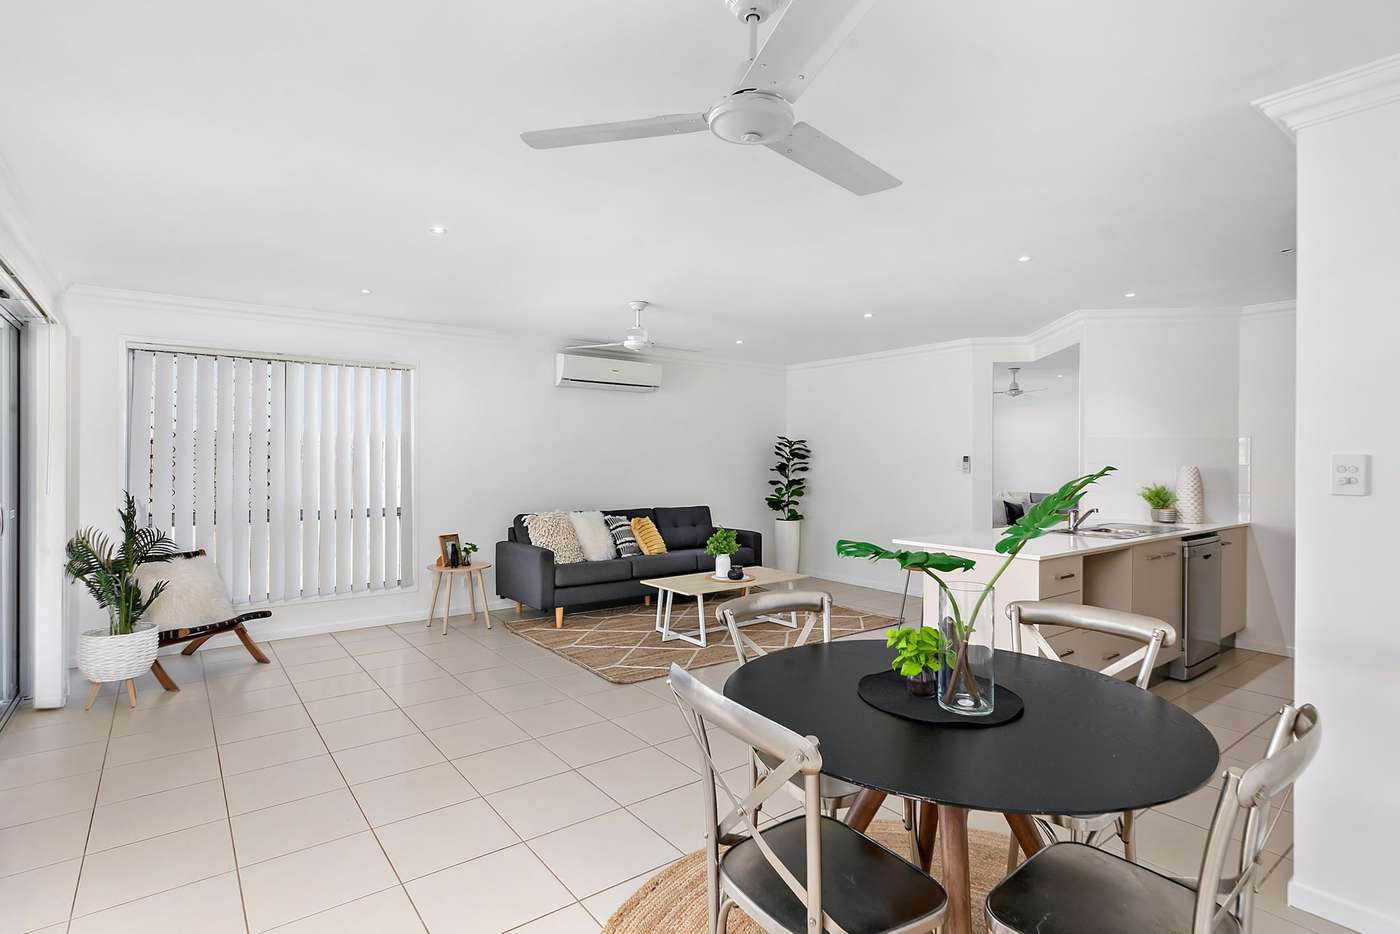 Fifth view of Homely house listing, 23 Lynch Crescent, Birkdale QLD 4159